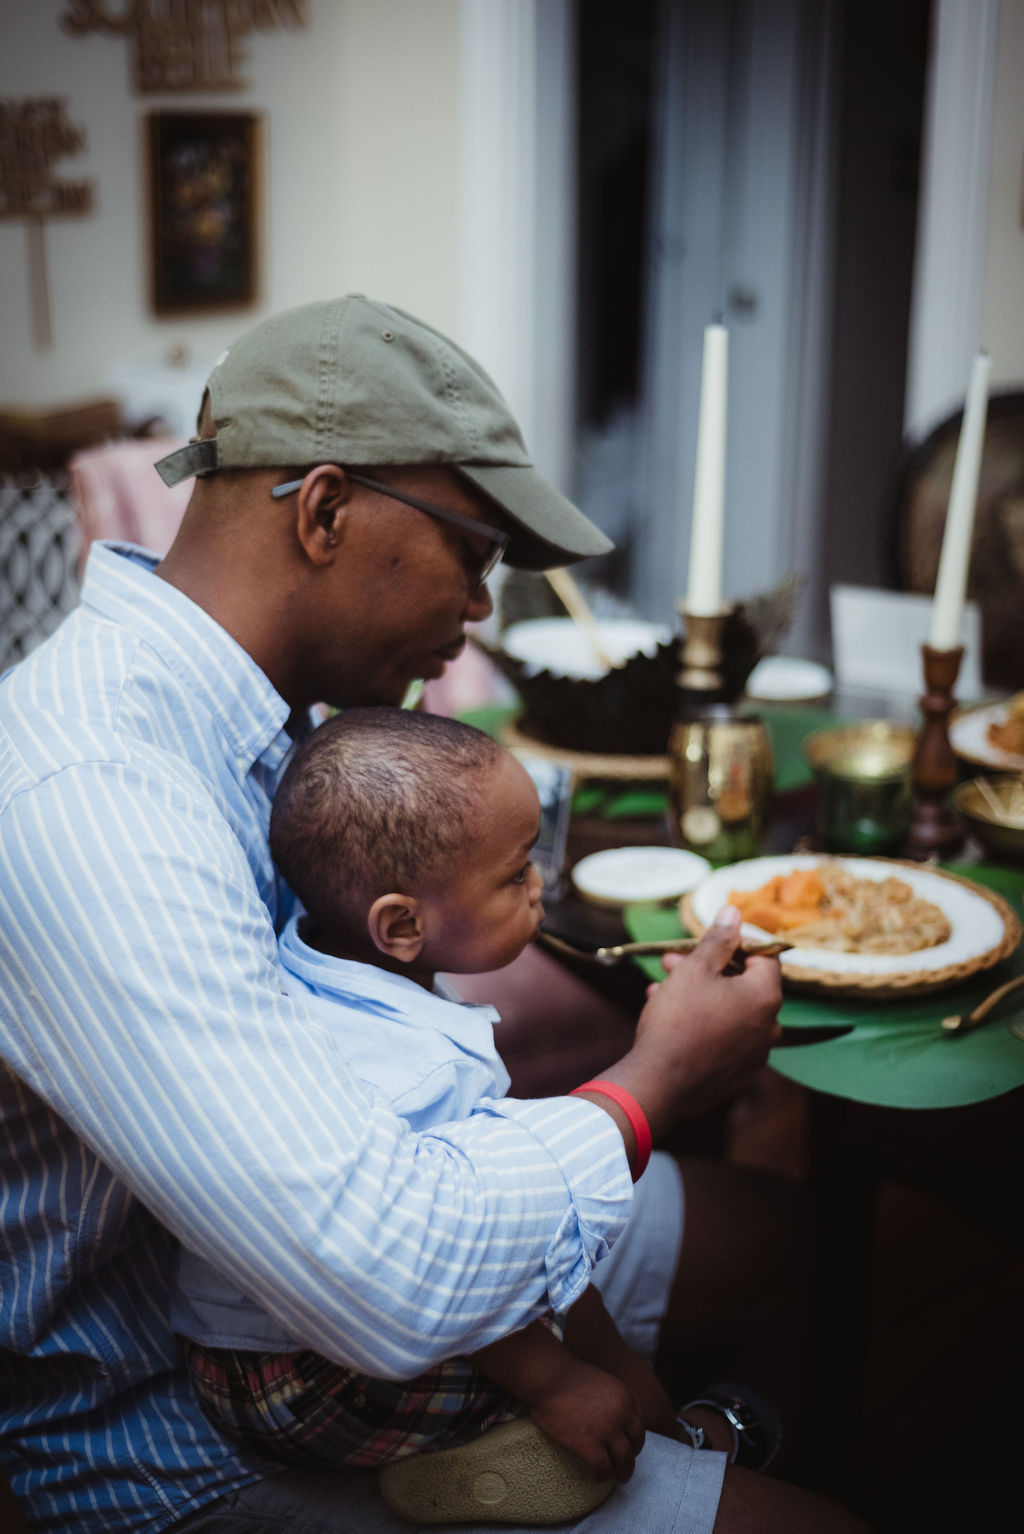 A traditional Juneteenth meal shared with family